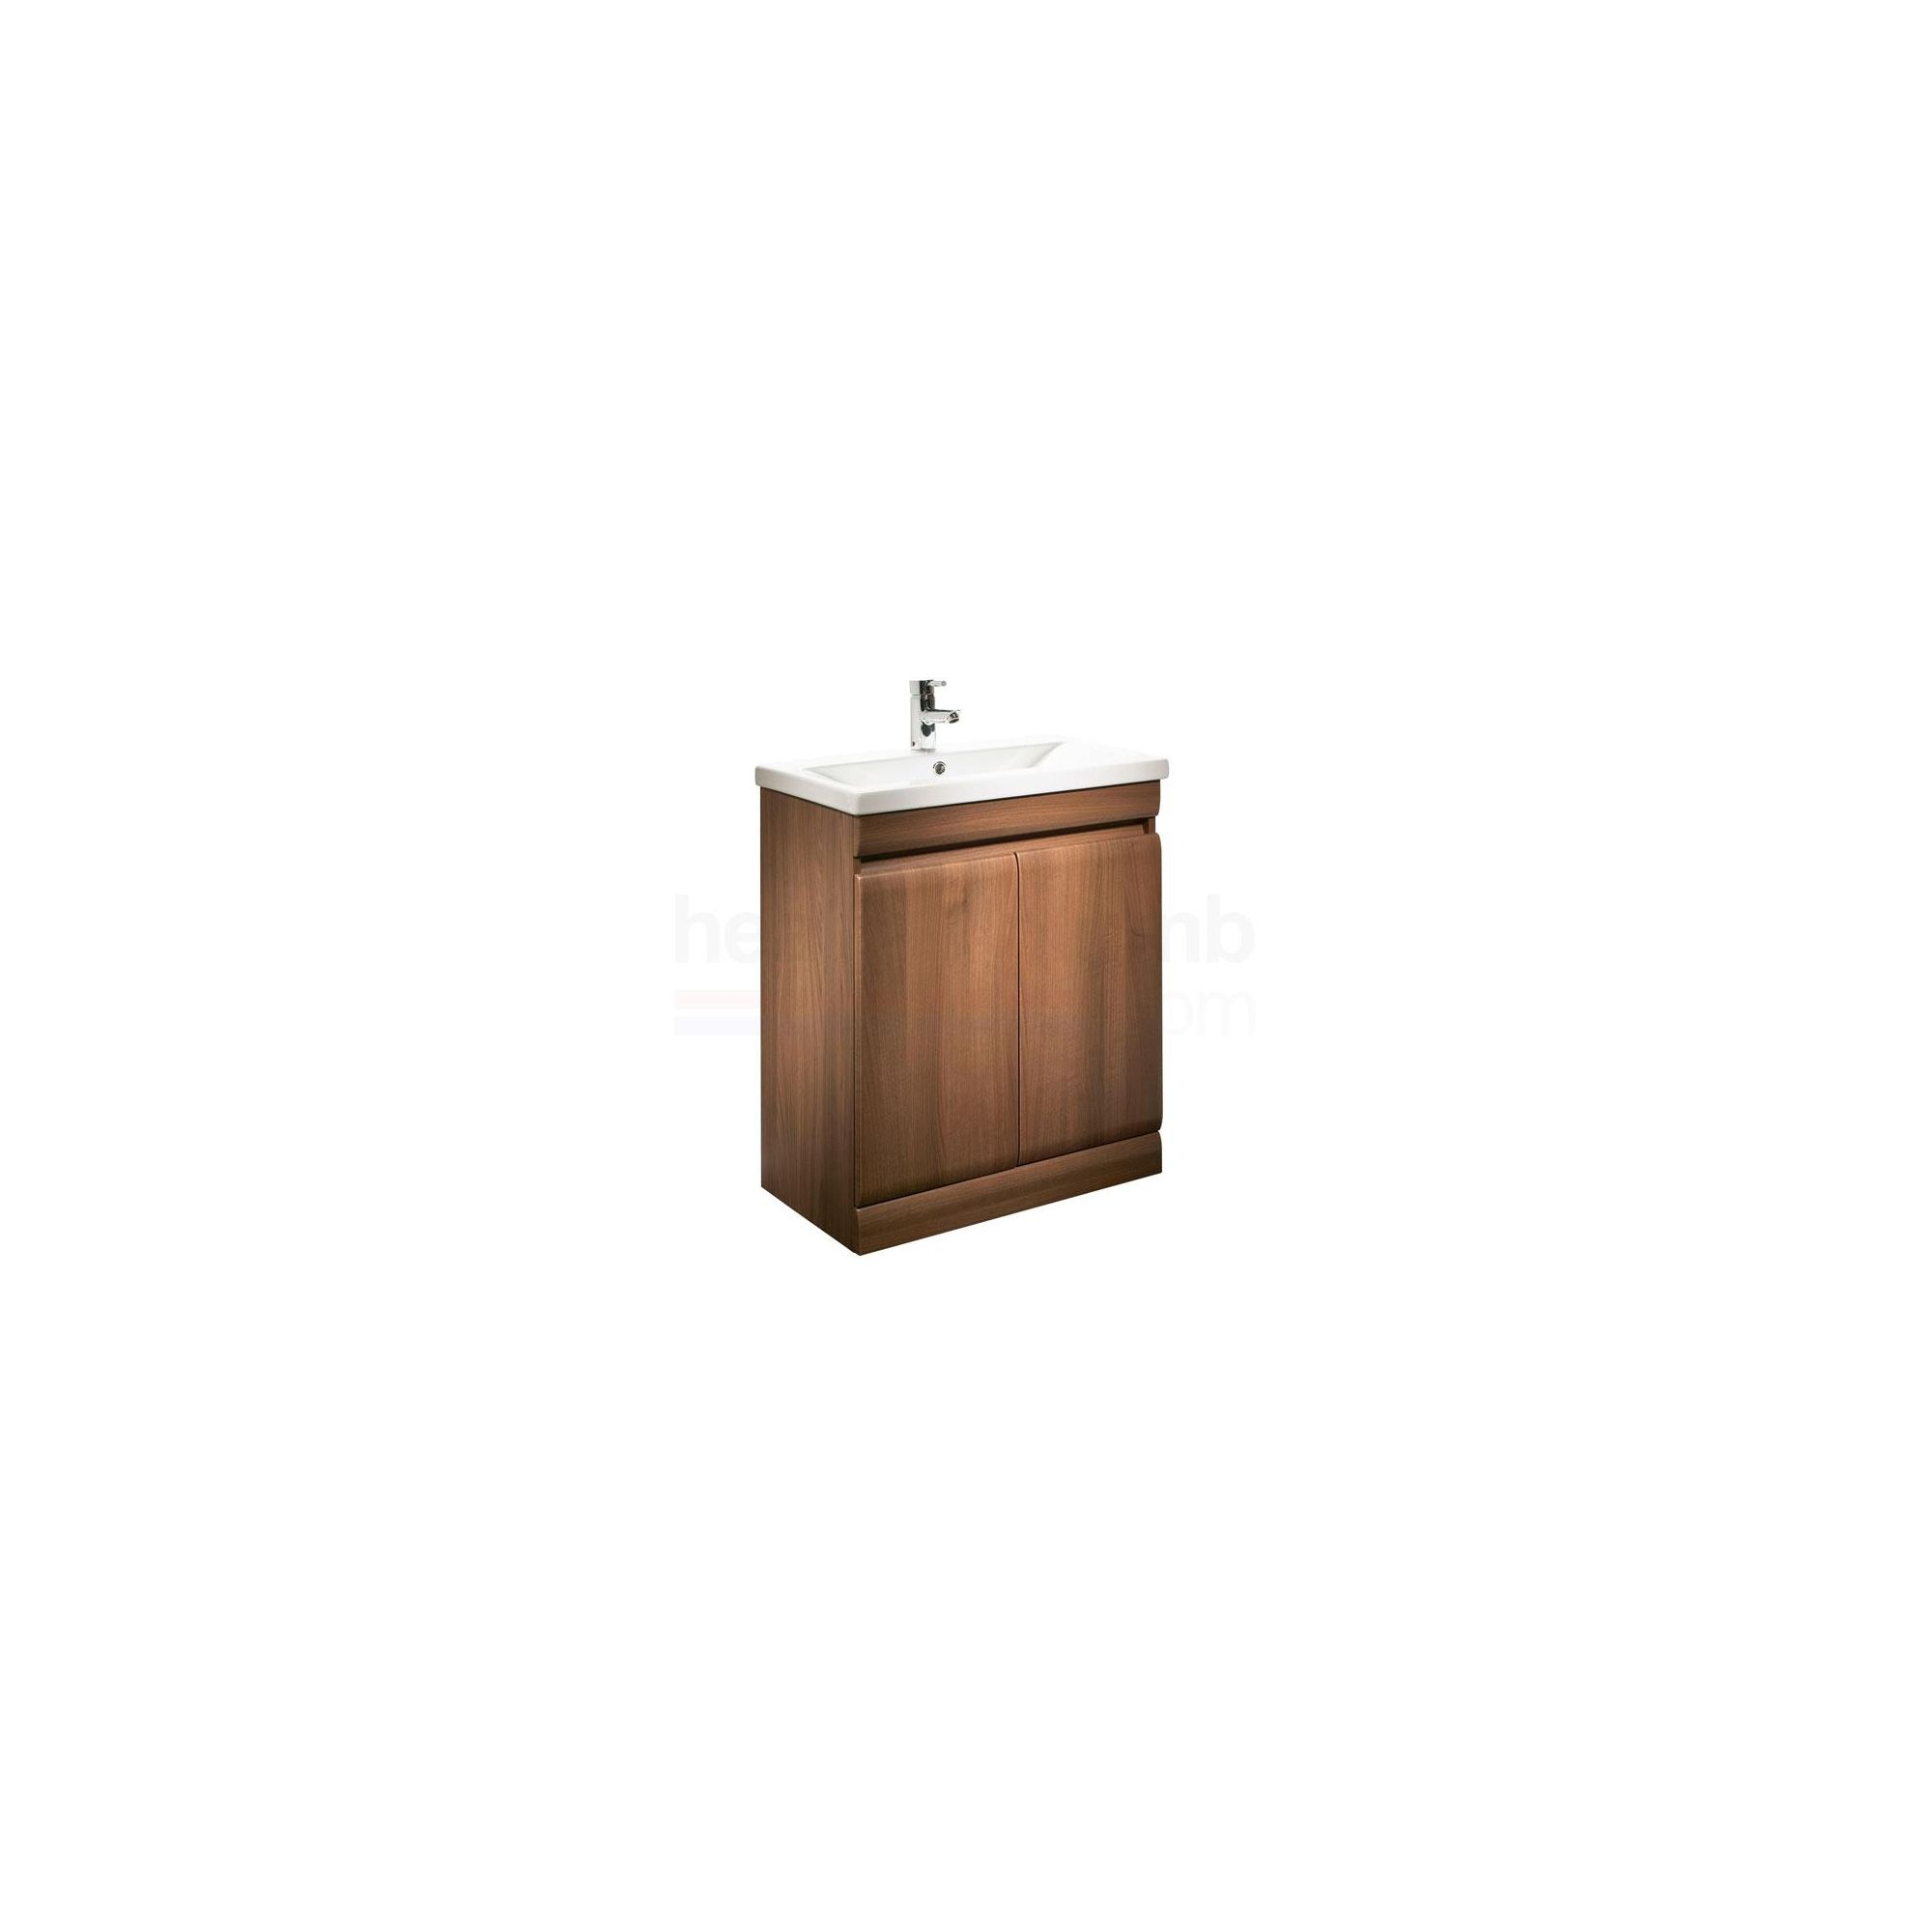 Tavistock Groove White Floor Standing Cabinet and Basin - 1 Tap Hole - 700mm Wide